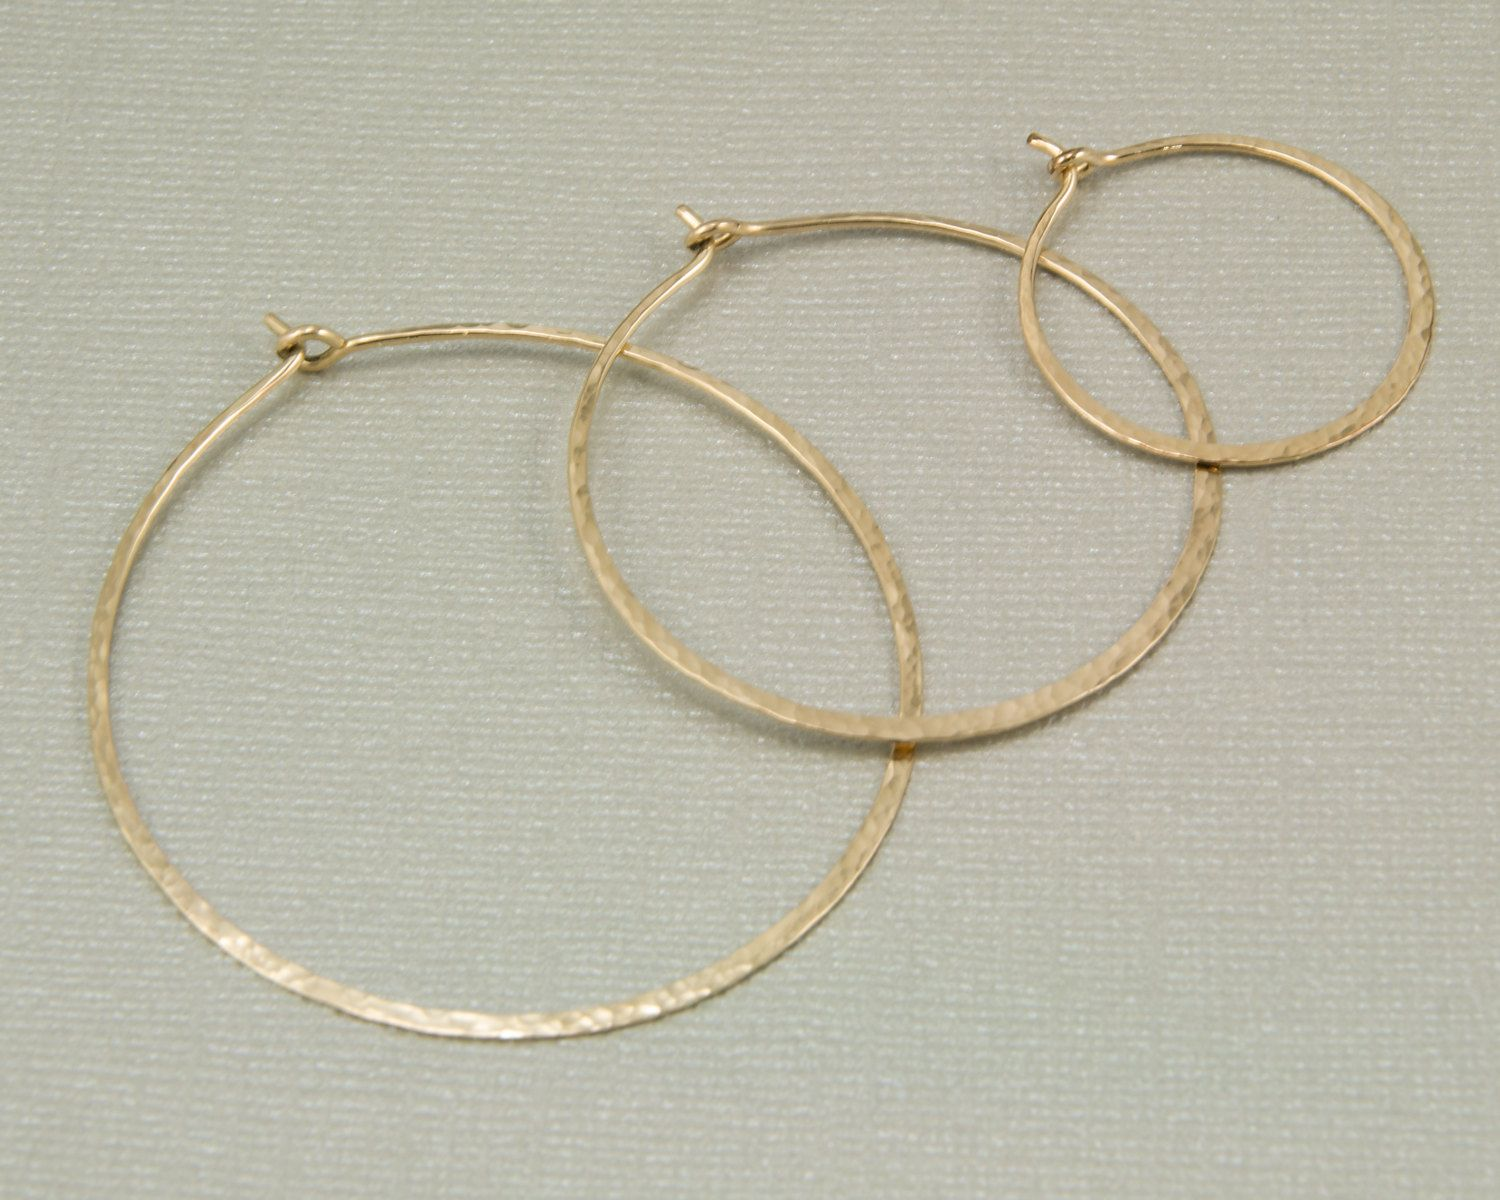 Thin Gold Hoop Earrings 14kt Filled Hoops Small Medium Large Hammered